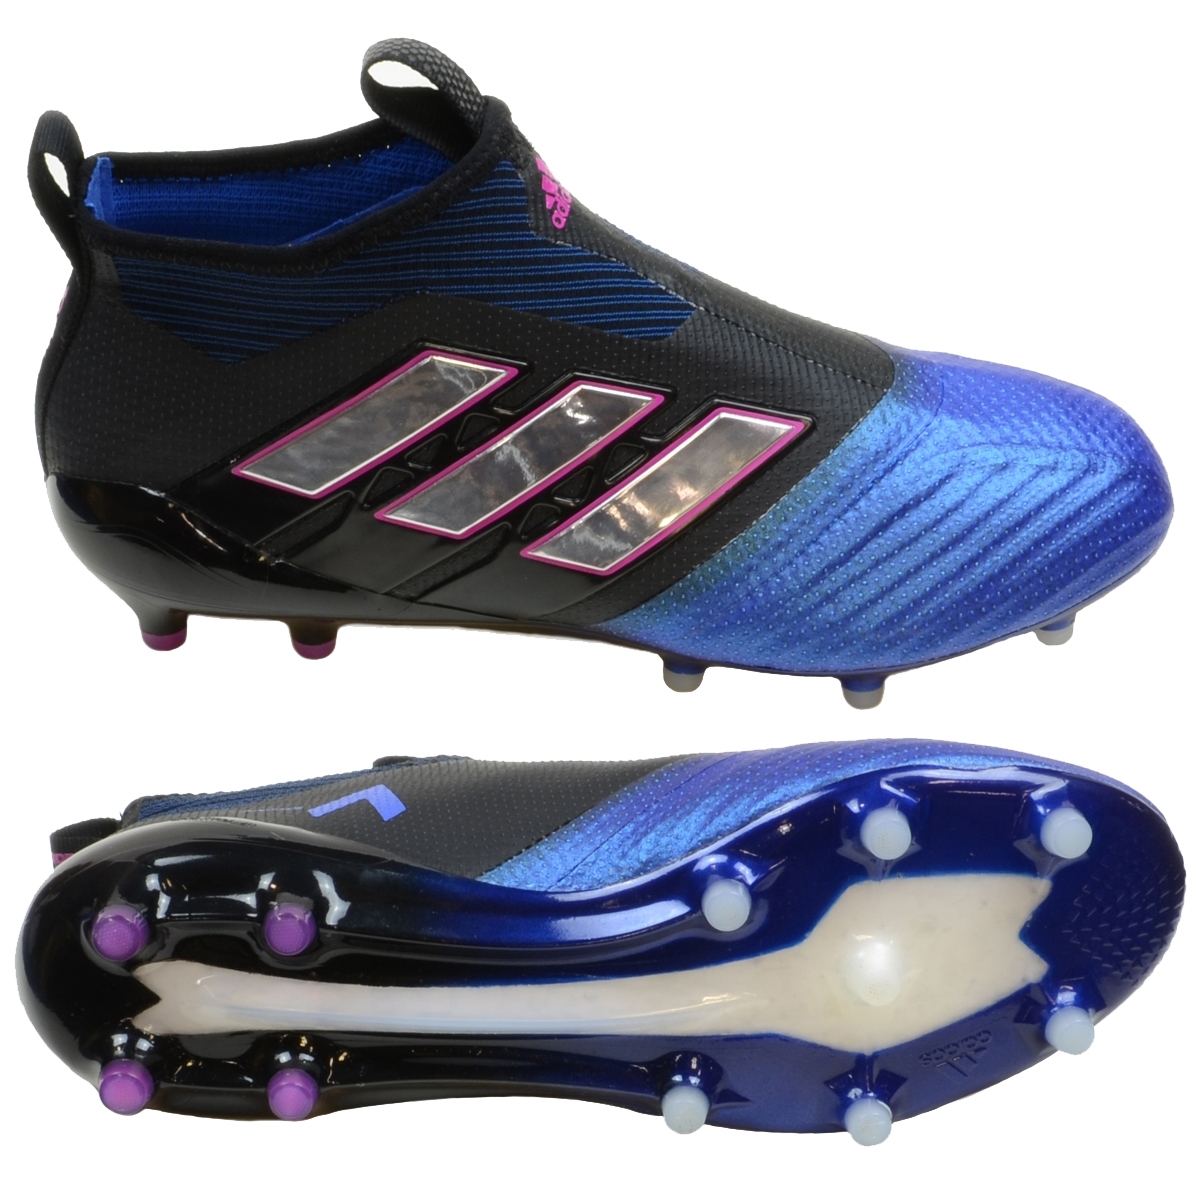 Adidas ACE 17+ PURECONTROL FG Soccer Cleats (Black White Blue ... 5c8e792a1ac0